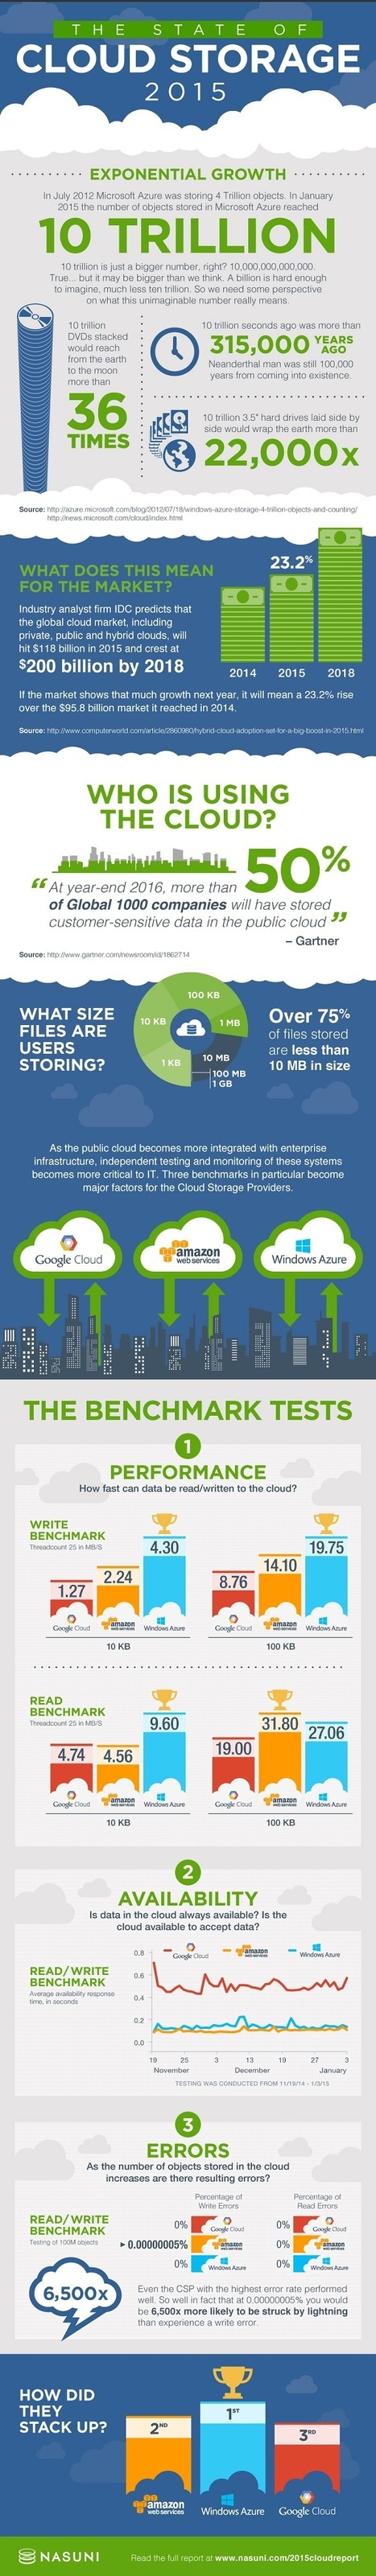 Microsoft Beats Amazon in Cloud Storage [Infographic] | Big Data Analysis in the Clouds | Scoop.it